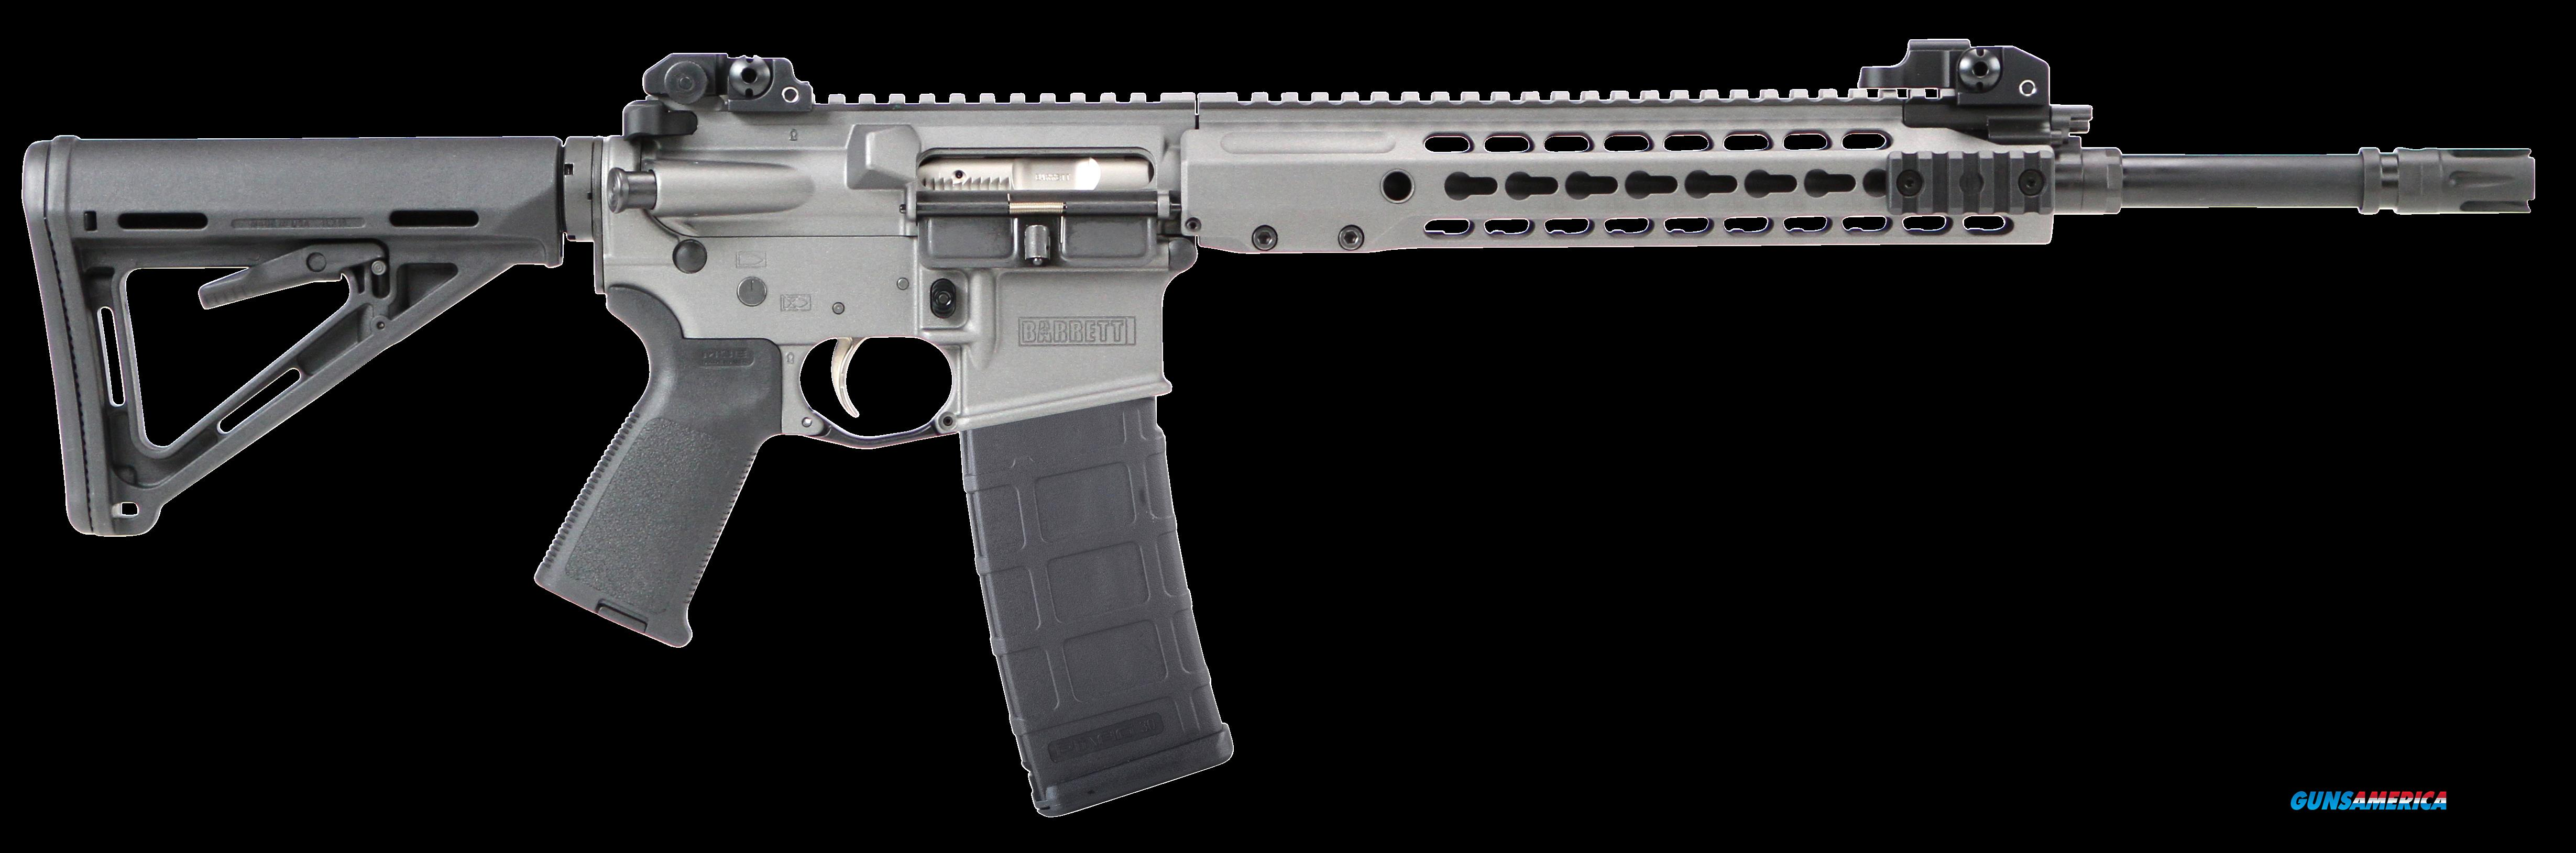 "Barrett 14560 REC7 Gen II Semi-Automatic 223 Remington/5.56 NATO 16"" 30+1 Magpul MOE Blk Stk Gray  Guns > Rifles > Barrett Rifles"